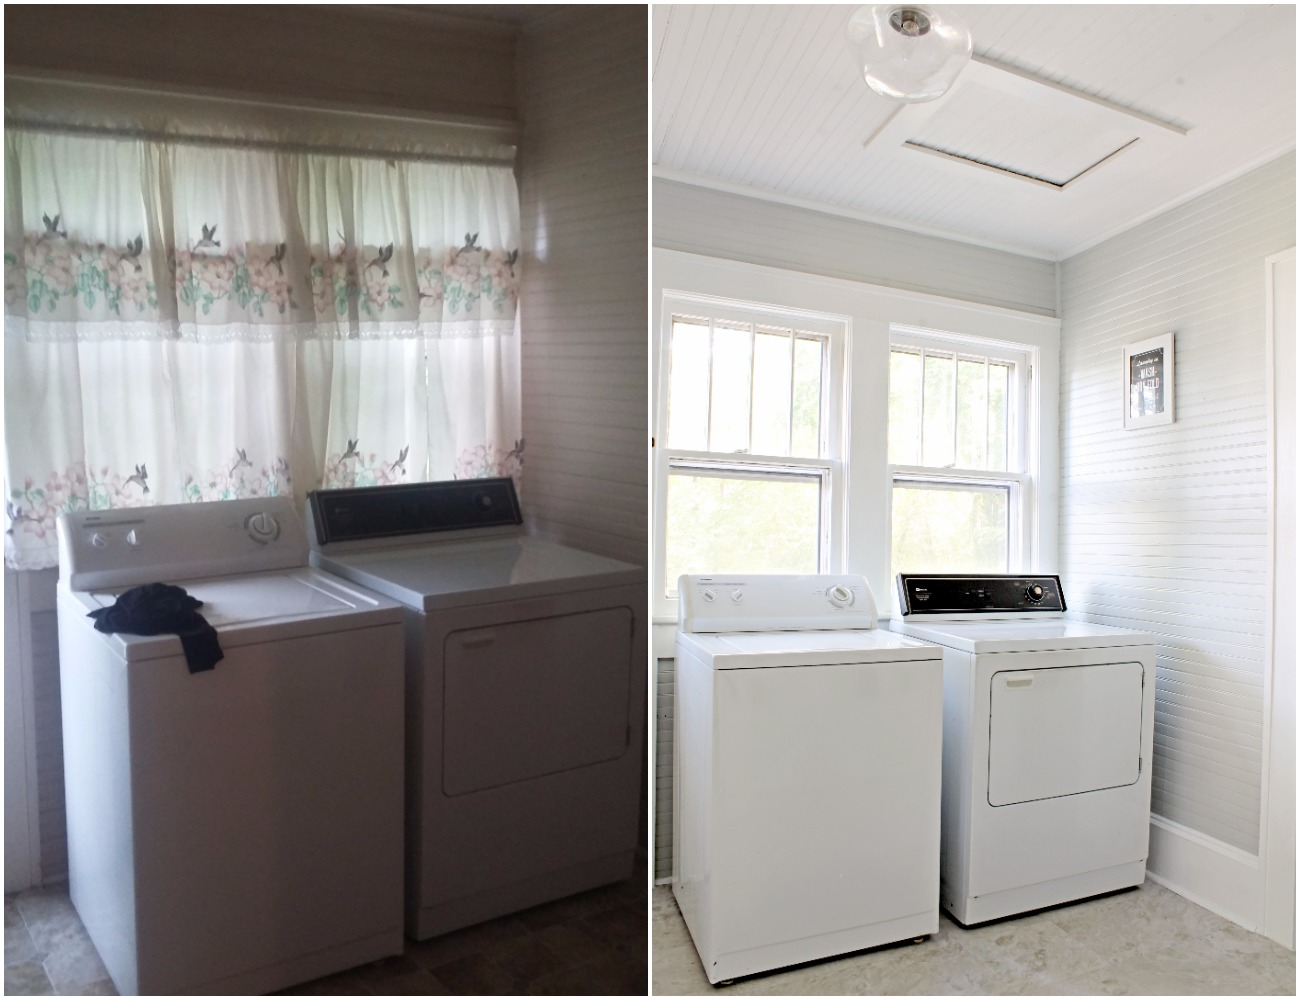 House Flipping Before and Afters - DIY BUDGET LAUNDRY ROOM MUD ROOM IDEAS 1.jpg